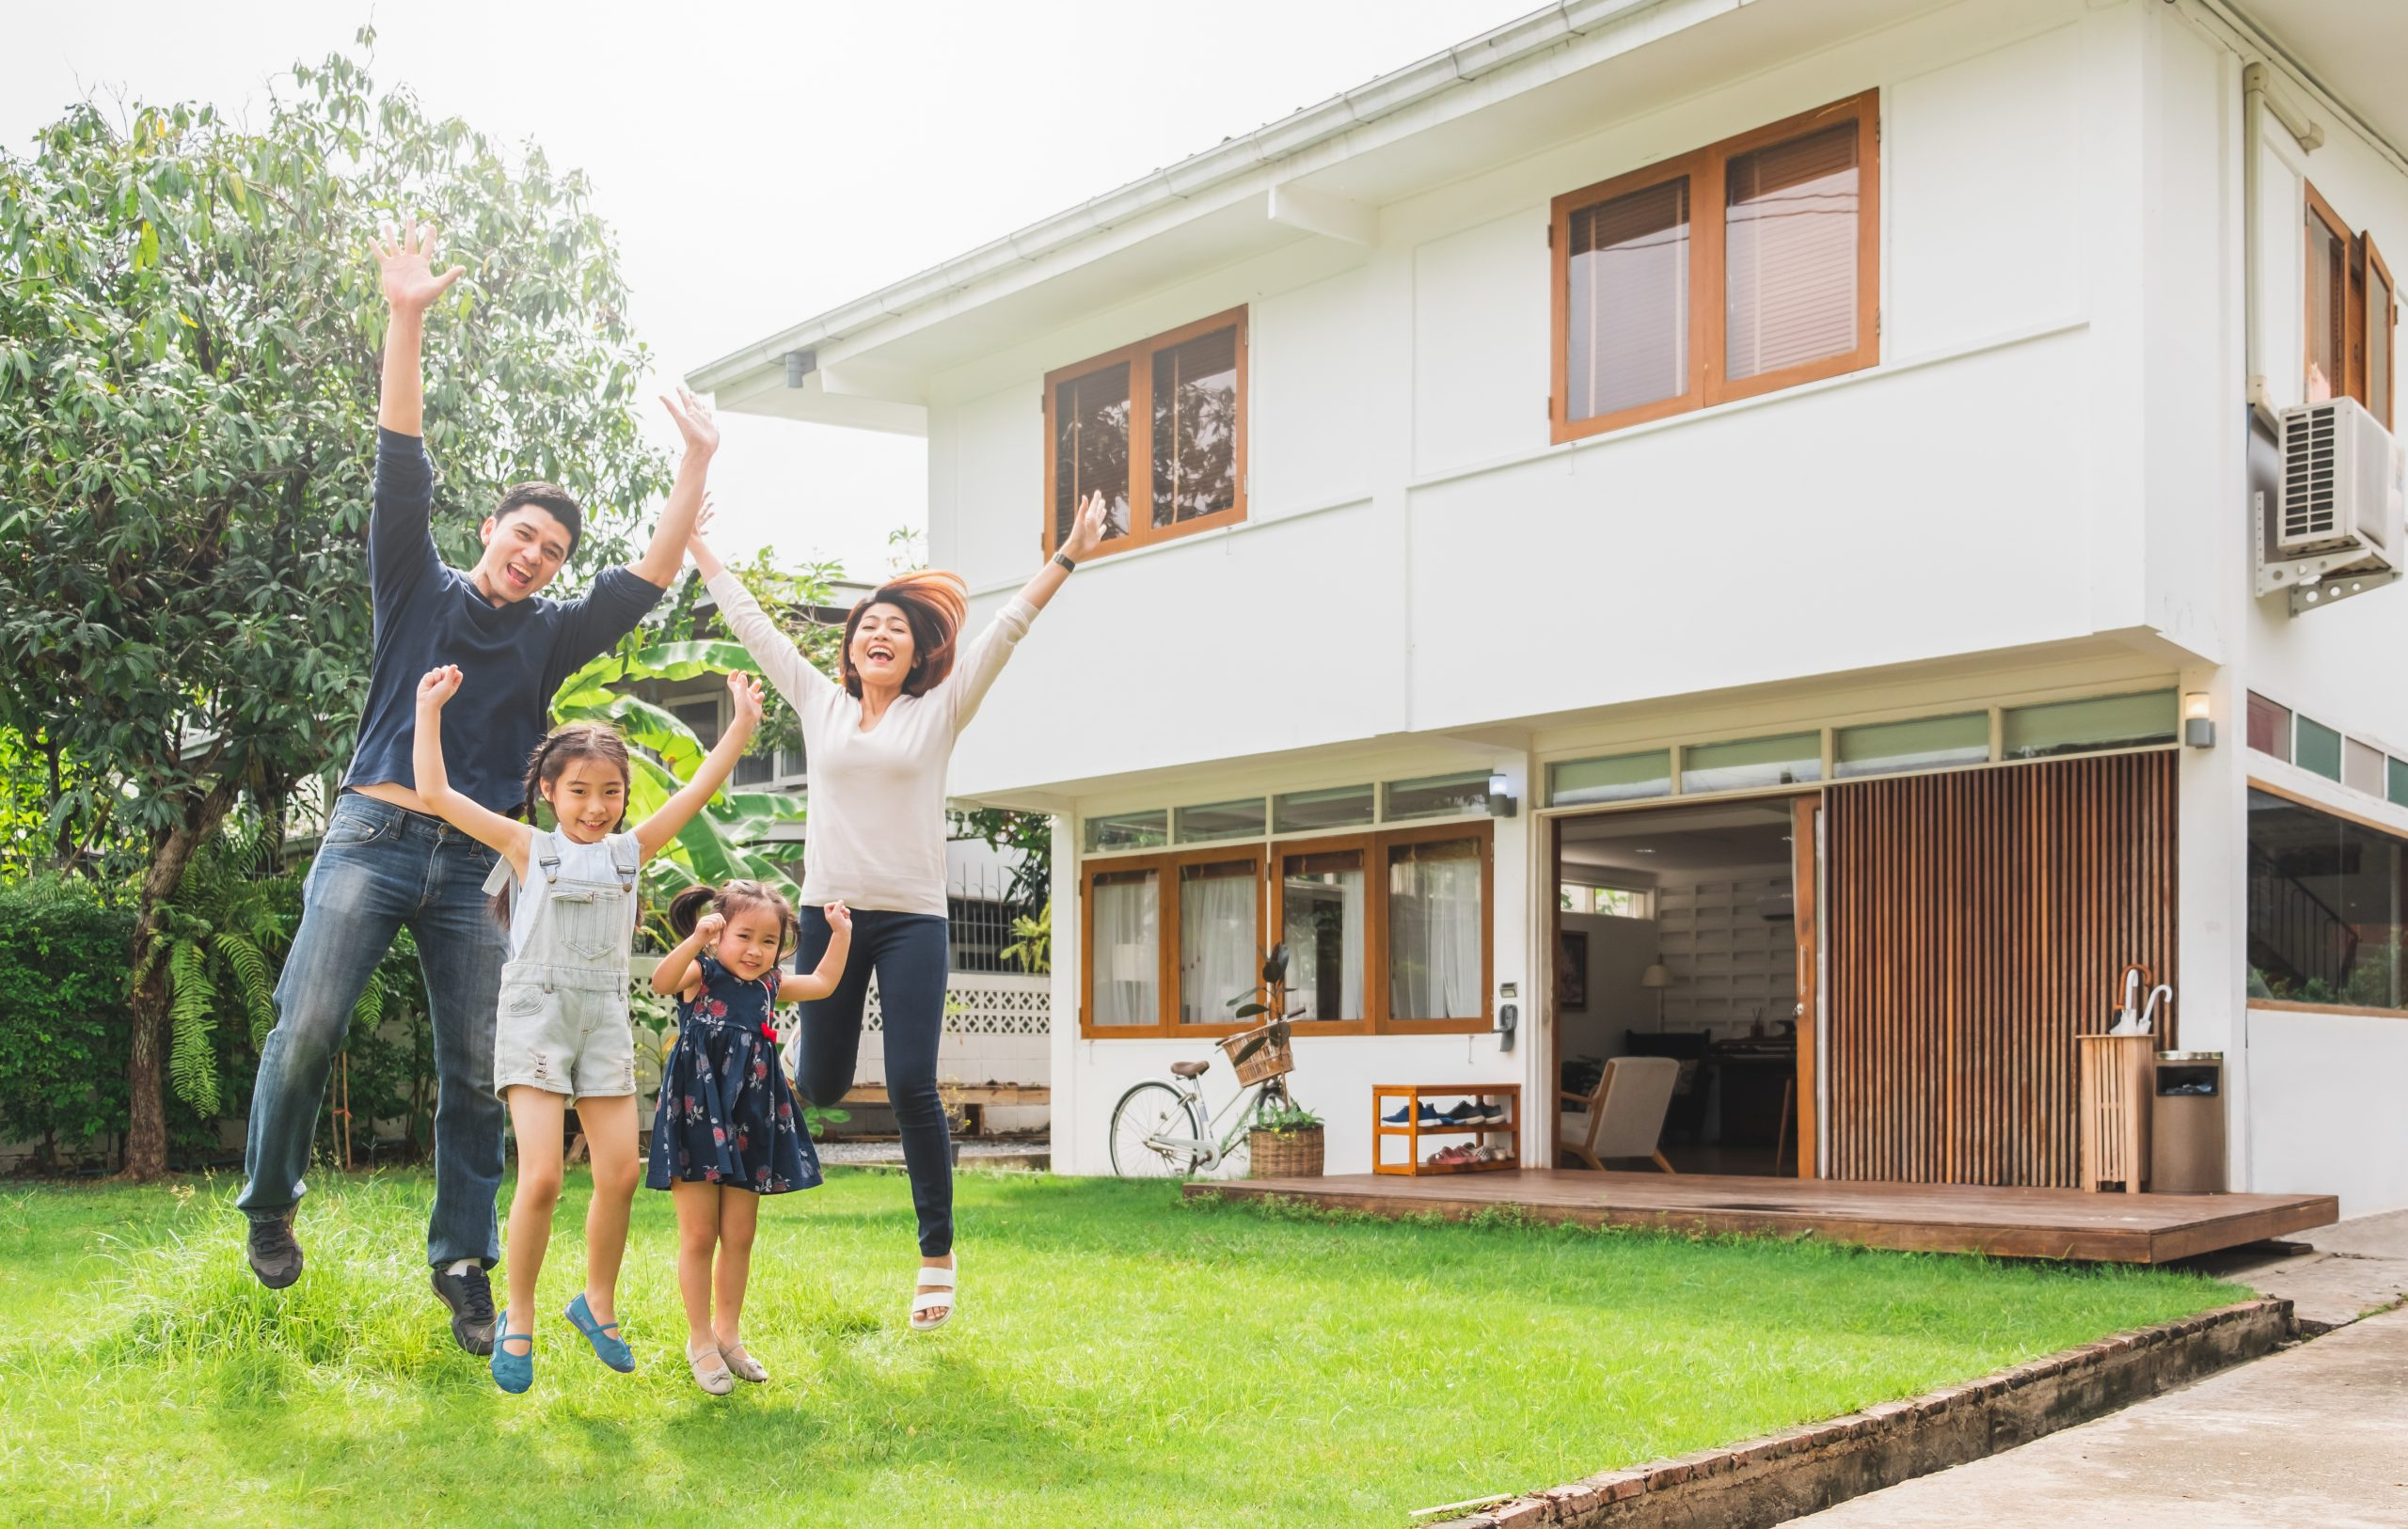 TOP TIPS TO HOME OWNERSHIP & GOAL SETTING